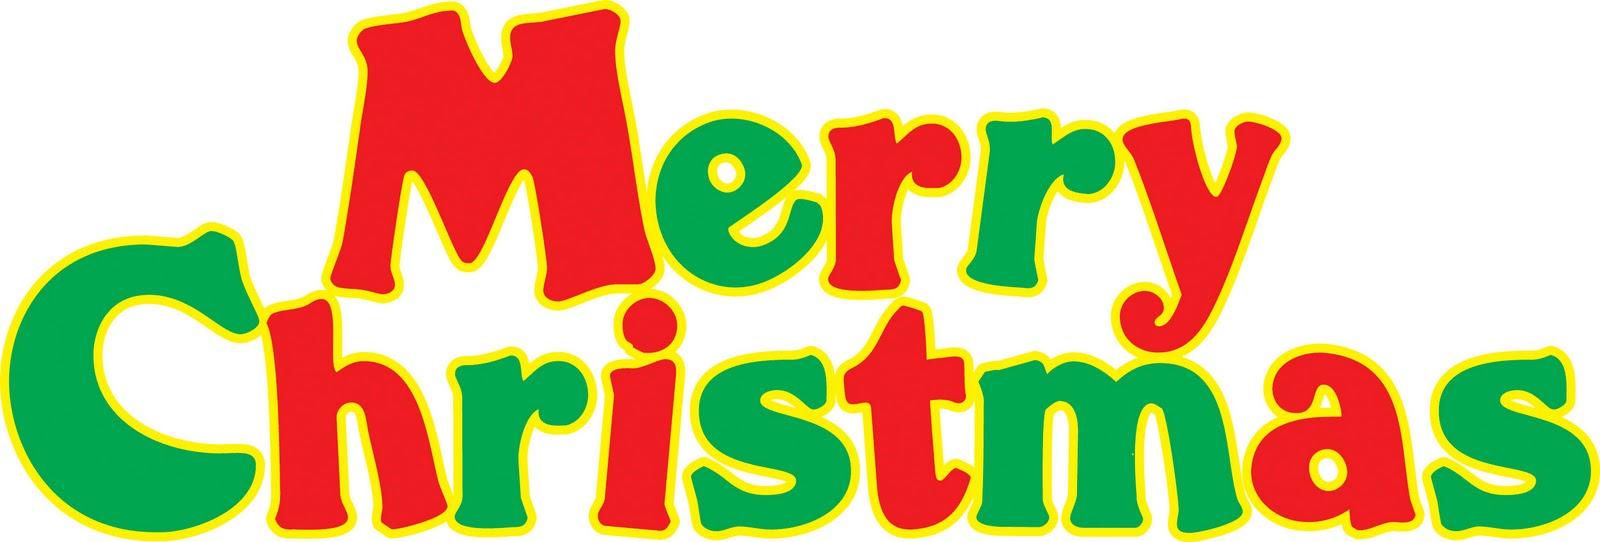 Free christmas clip art banners clipart images clipartbarn